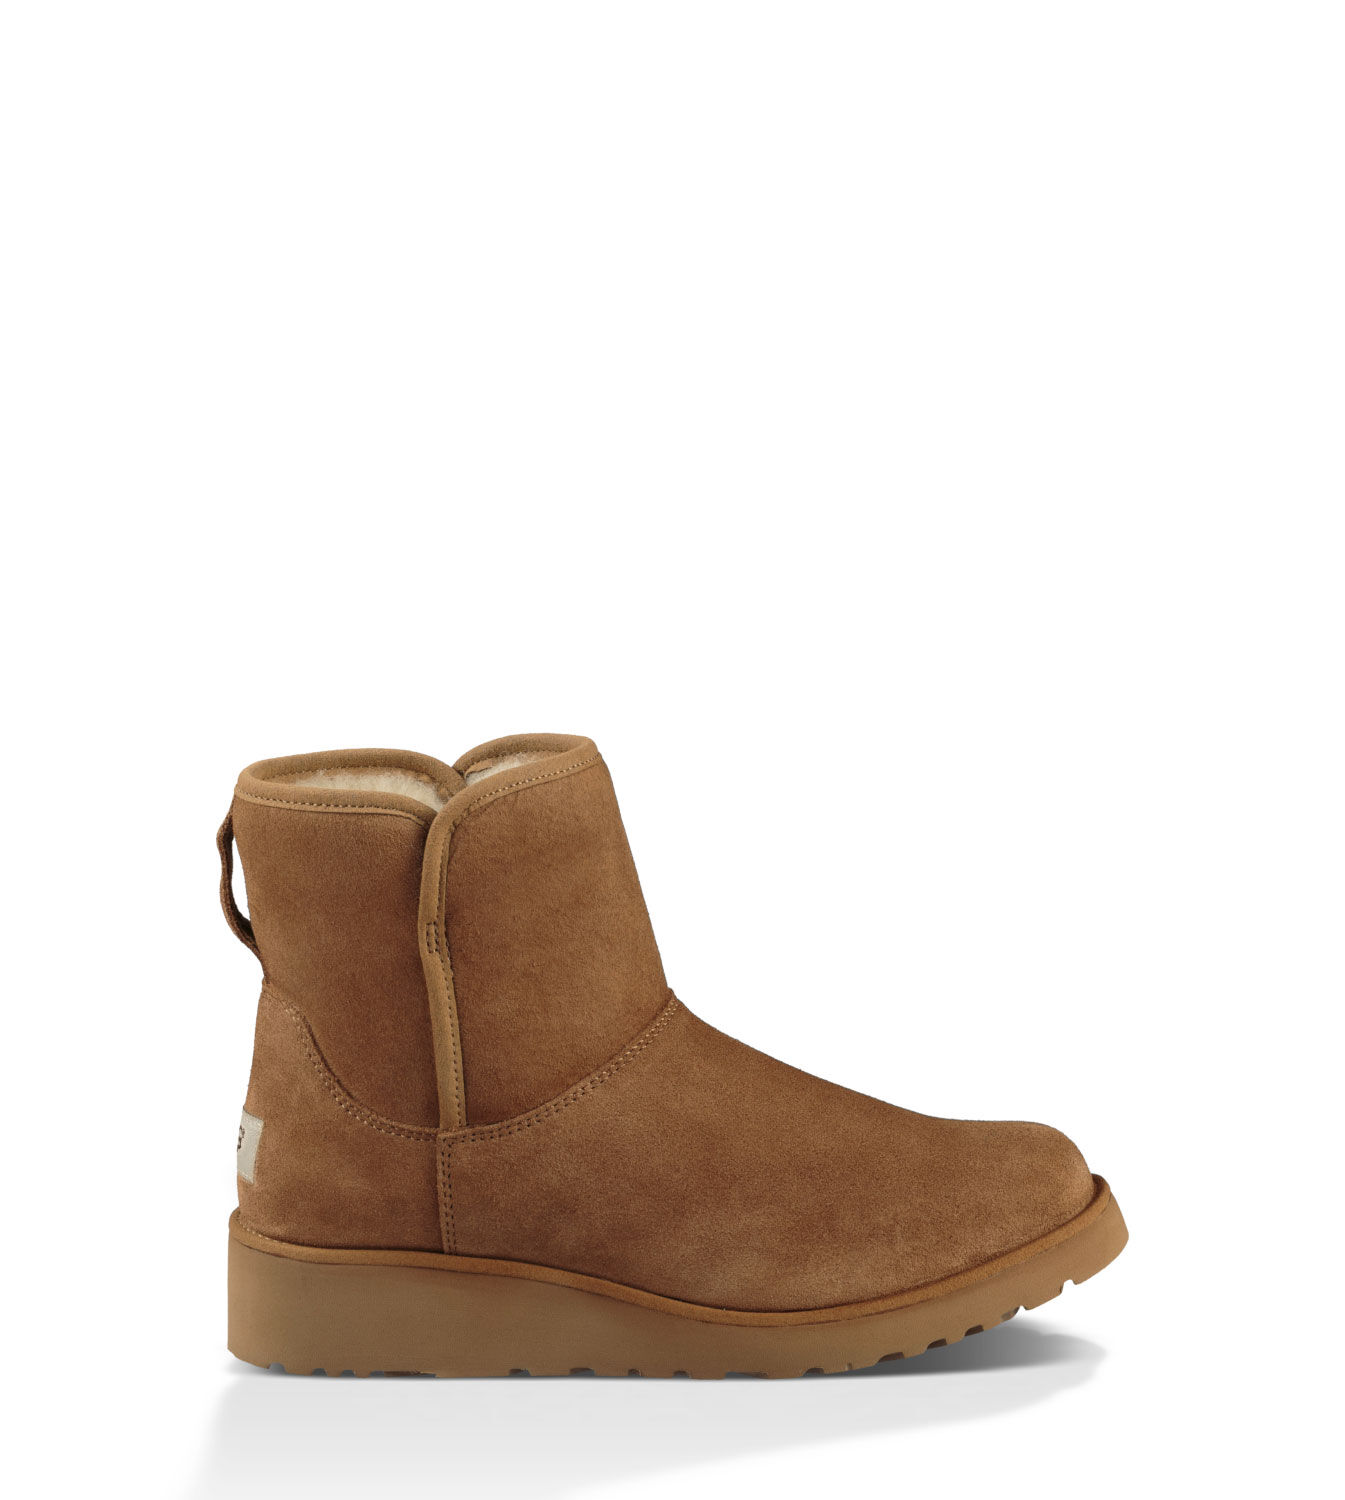 Women's UGG® Sale: Shoes, Boots, Slippers, & More | UGG